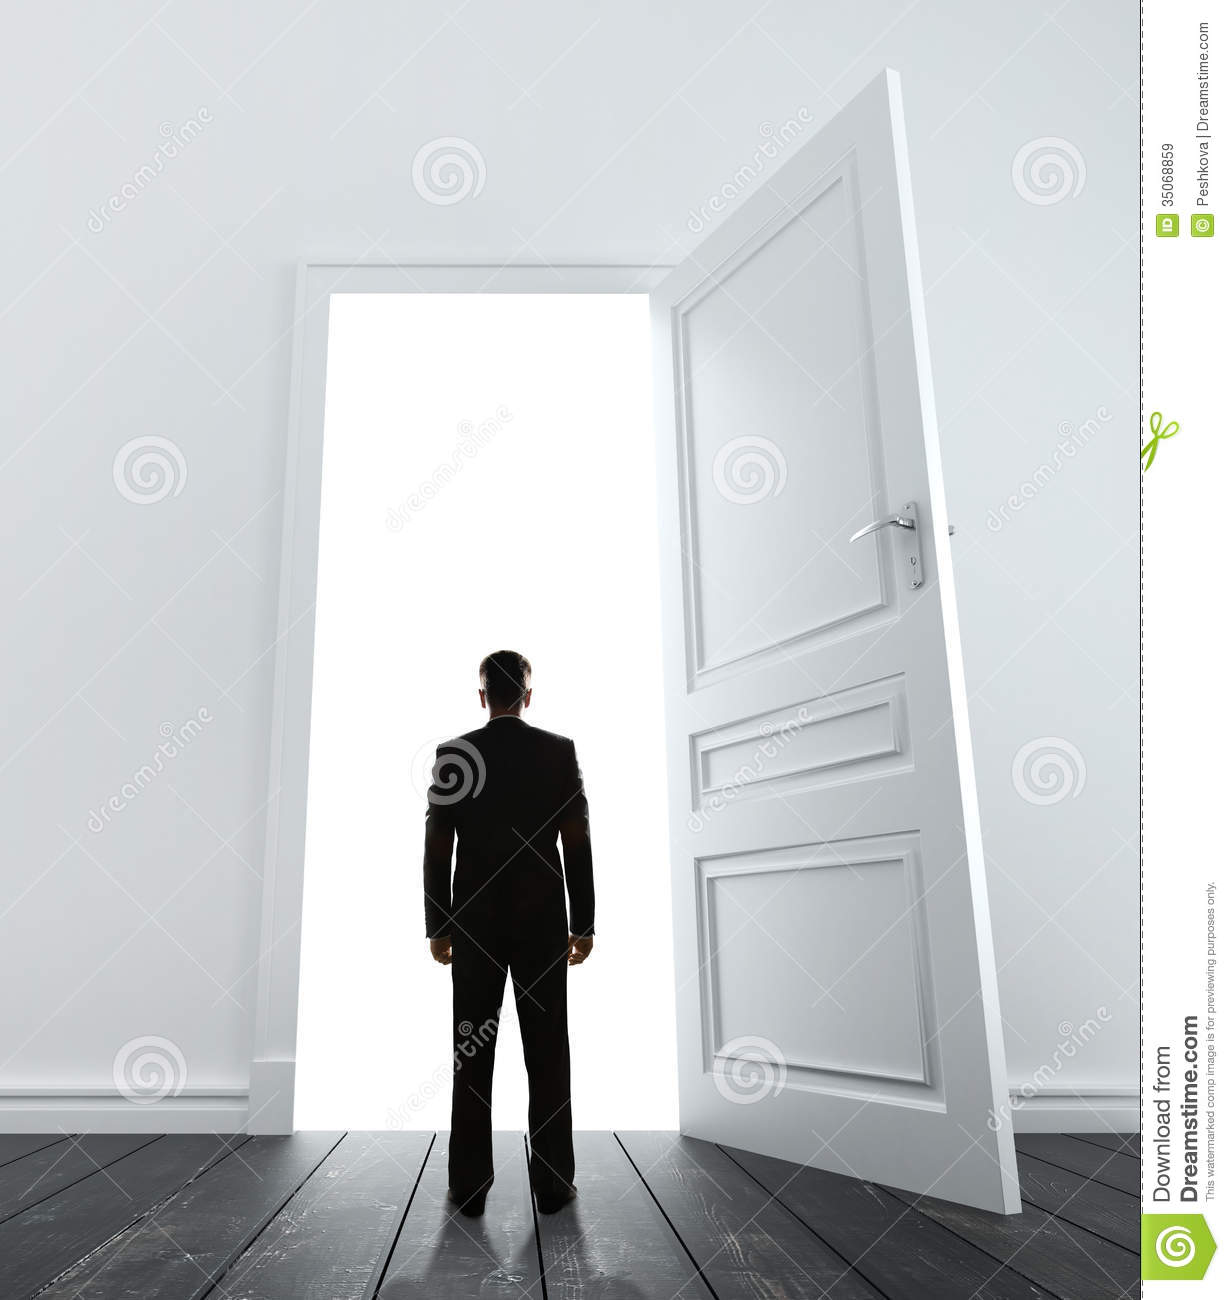 Man and door & Man and door stock image. Image of entrance opportunity - 35068859